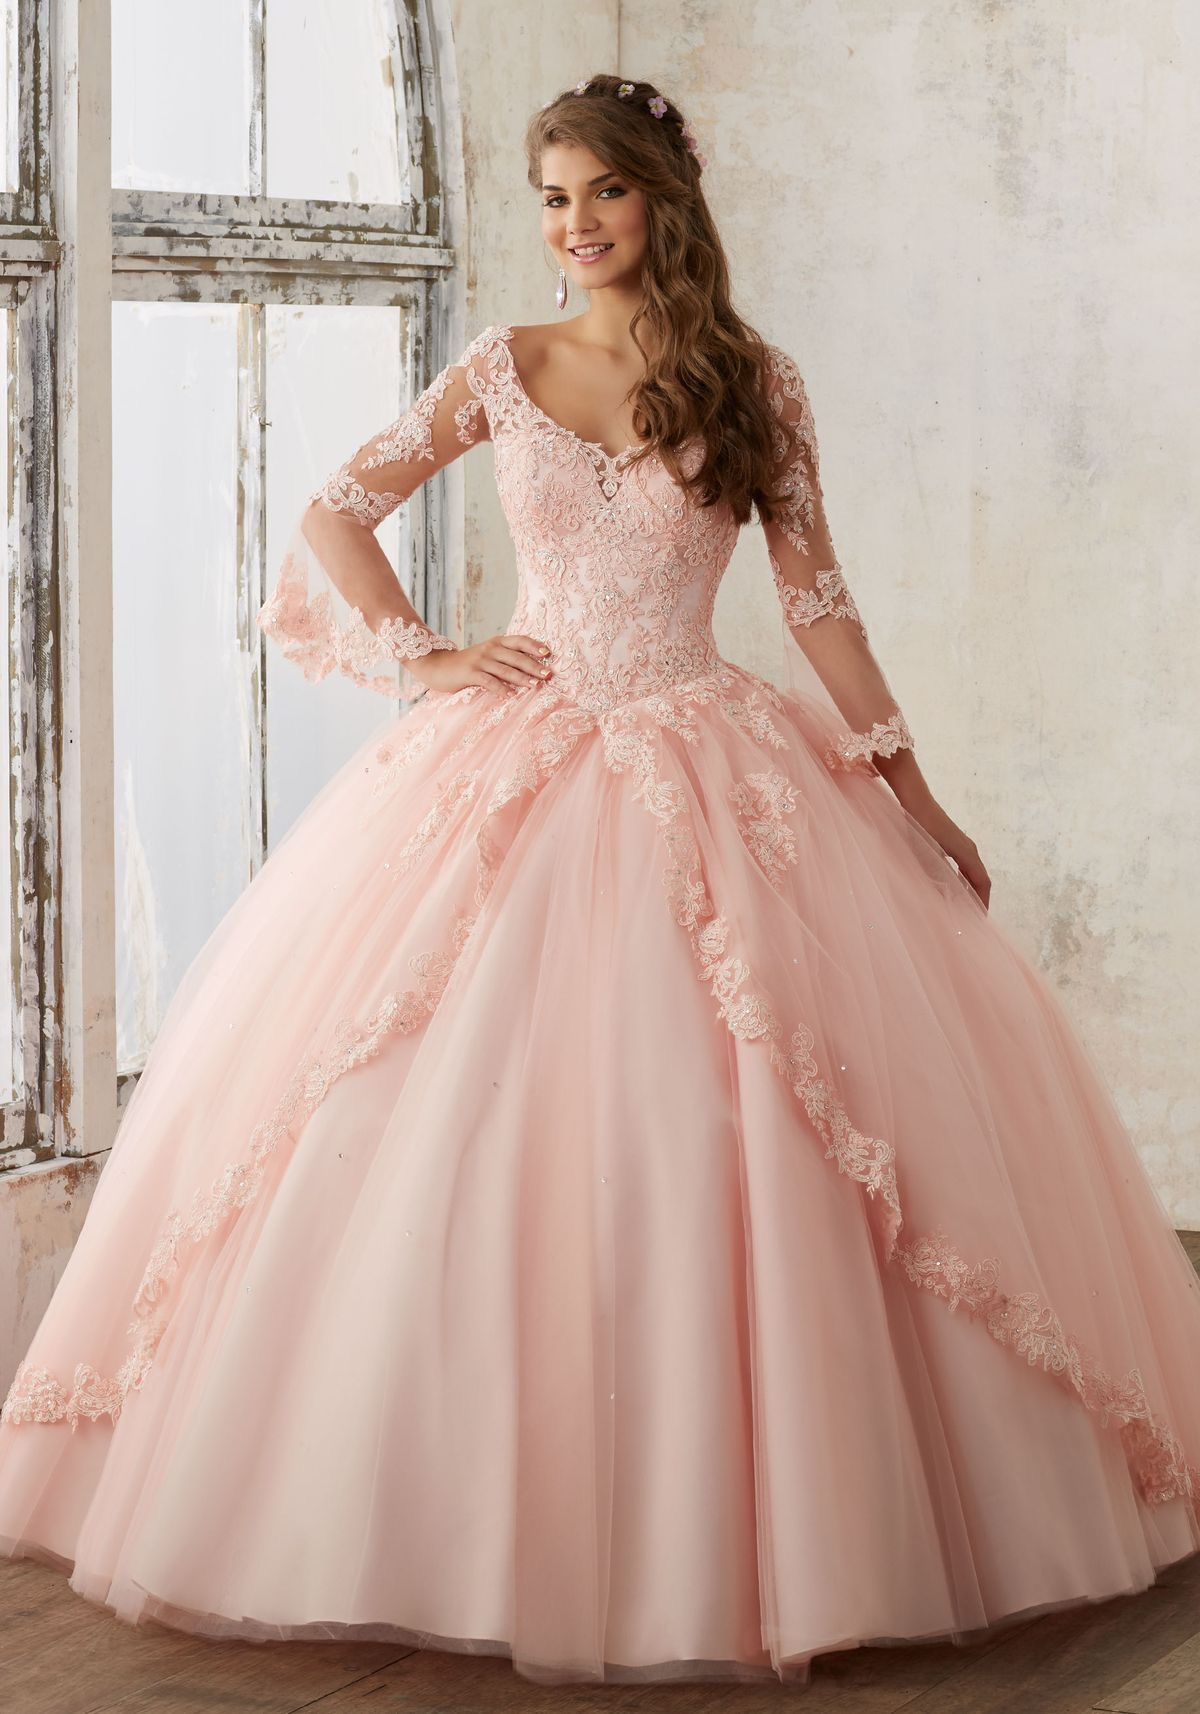 Pin by Umran on albüm | Pinterest | Quinceanera ideas, Princess and ...